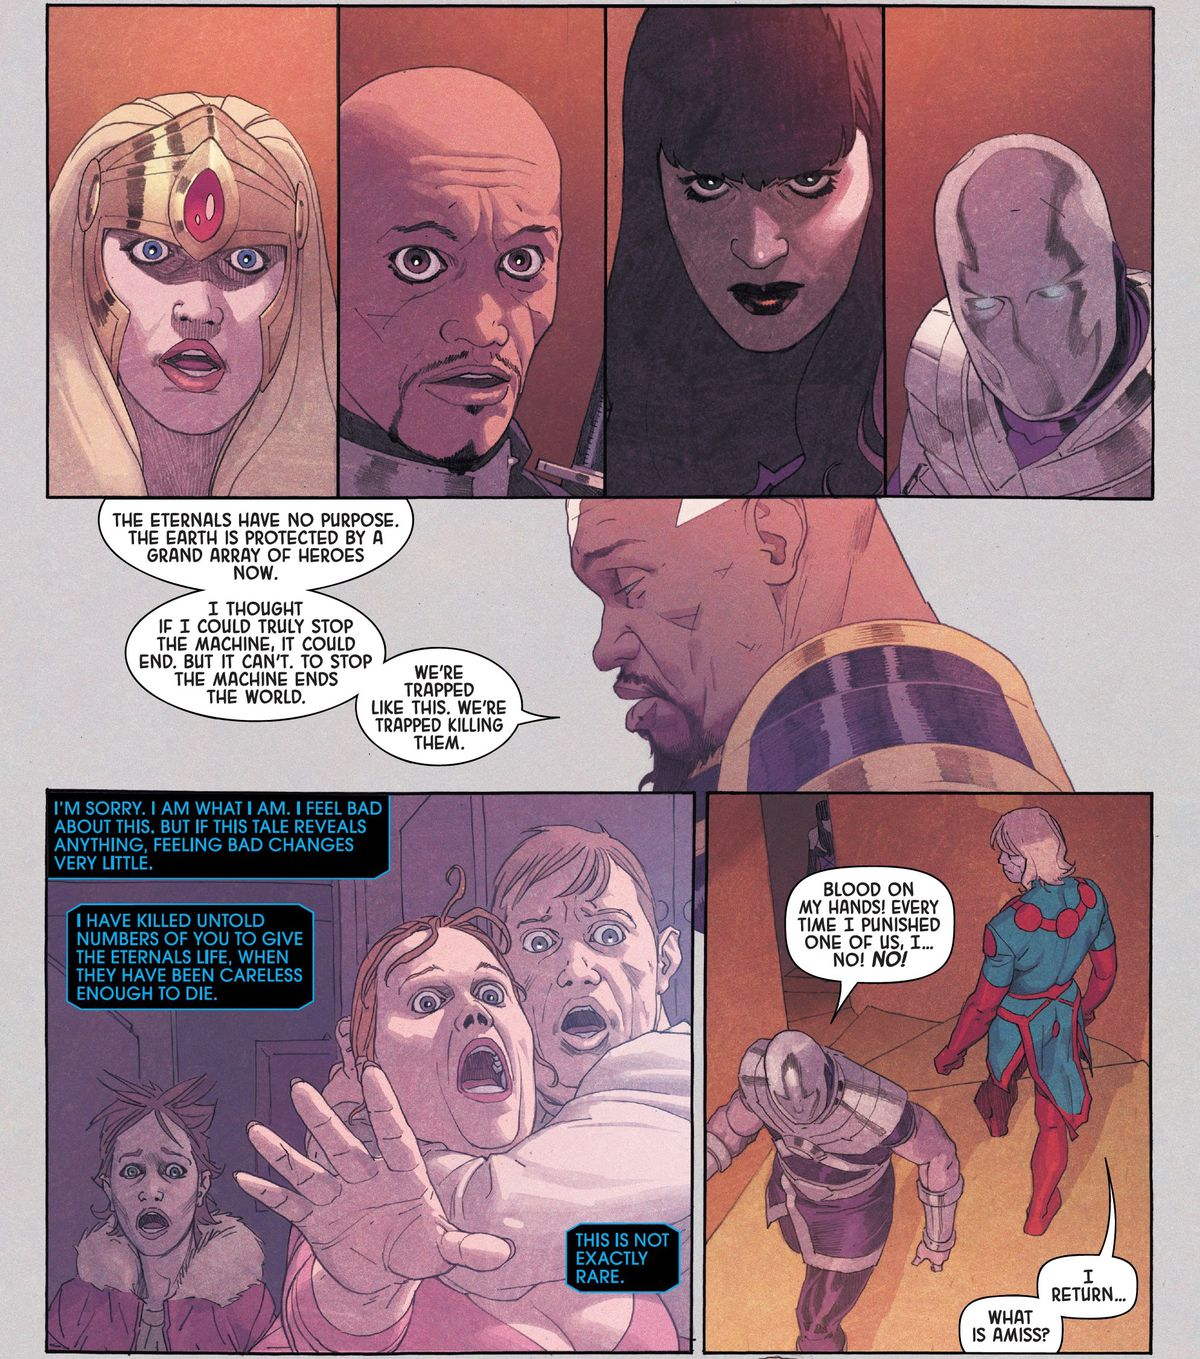 The Eternal Phastos explains his dark discovery to the shocked reactions of the other Eternals: The secret cost of their cycle of resurrection is that every time one of them comes back, a human life is taken as fuel. In Eternals #6 (2021).